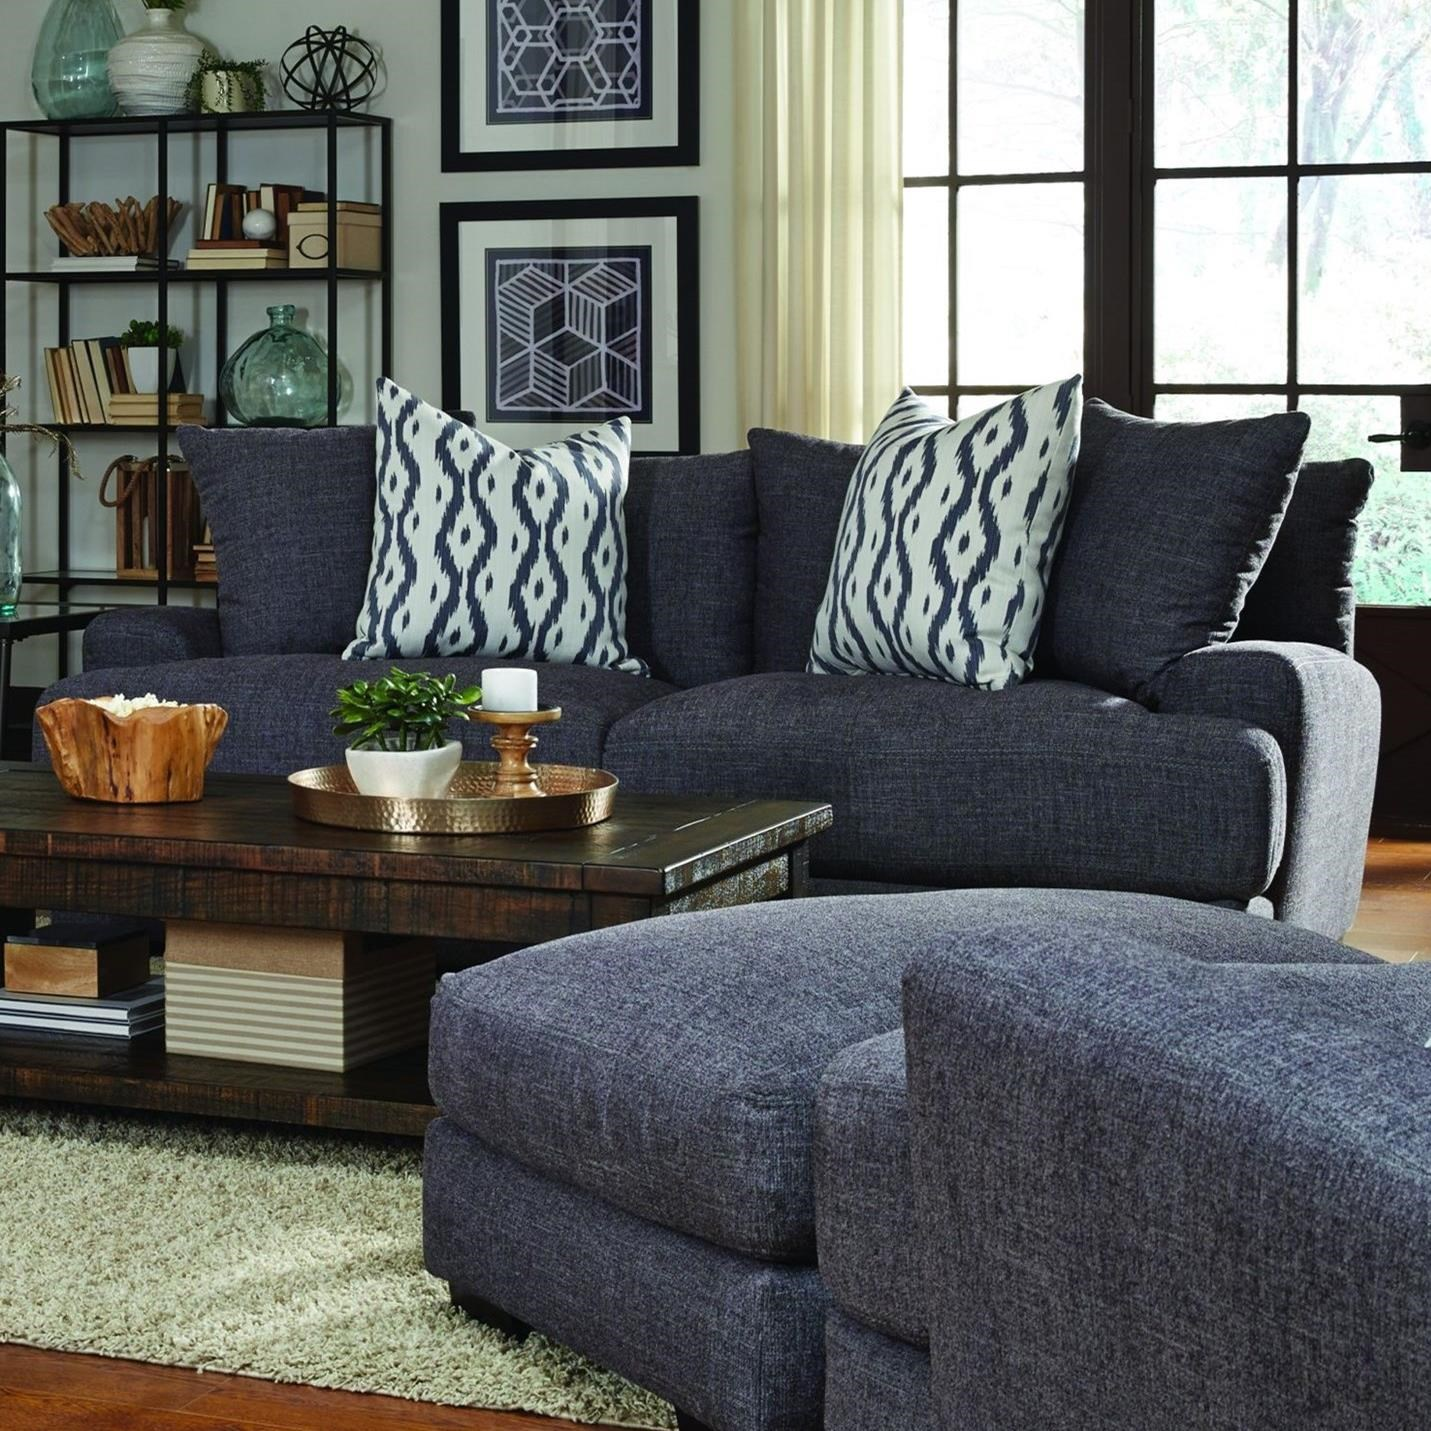 Franklin Journey 80840 Sofa With Two Seat Cushion Construction | Furniture  And ApplianceMart | Sofas